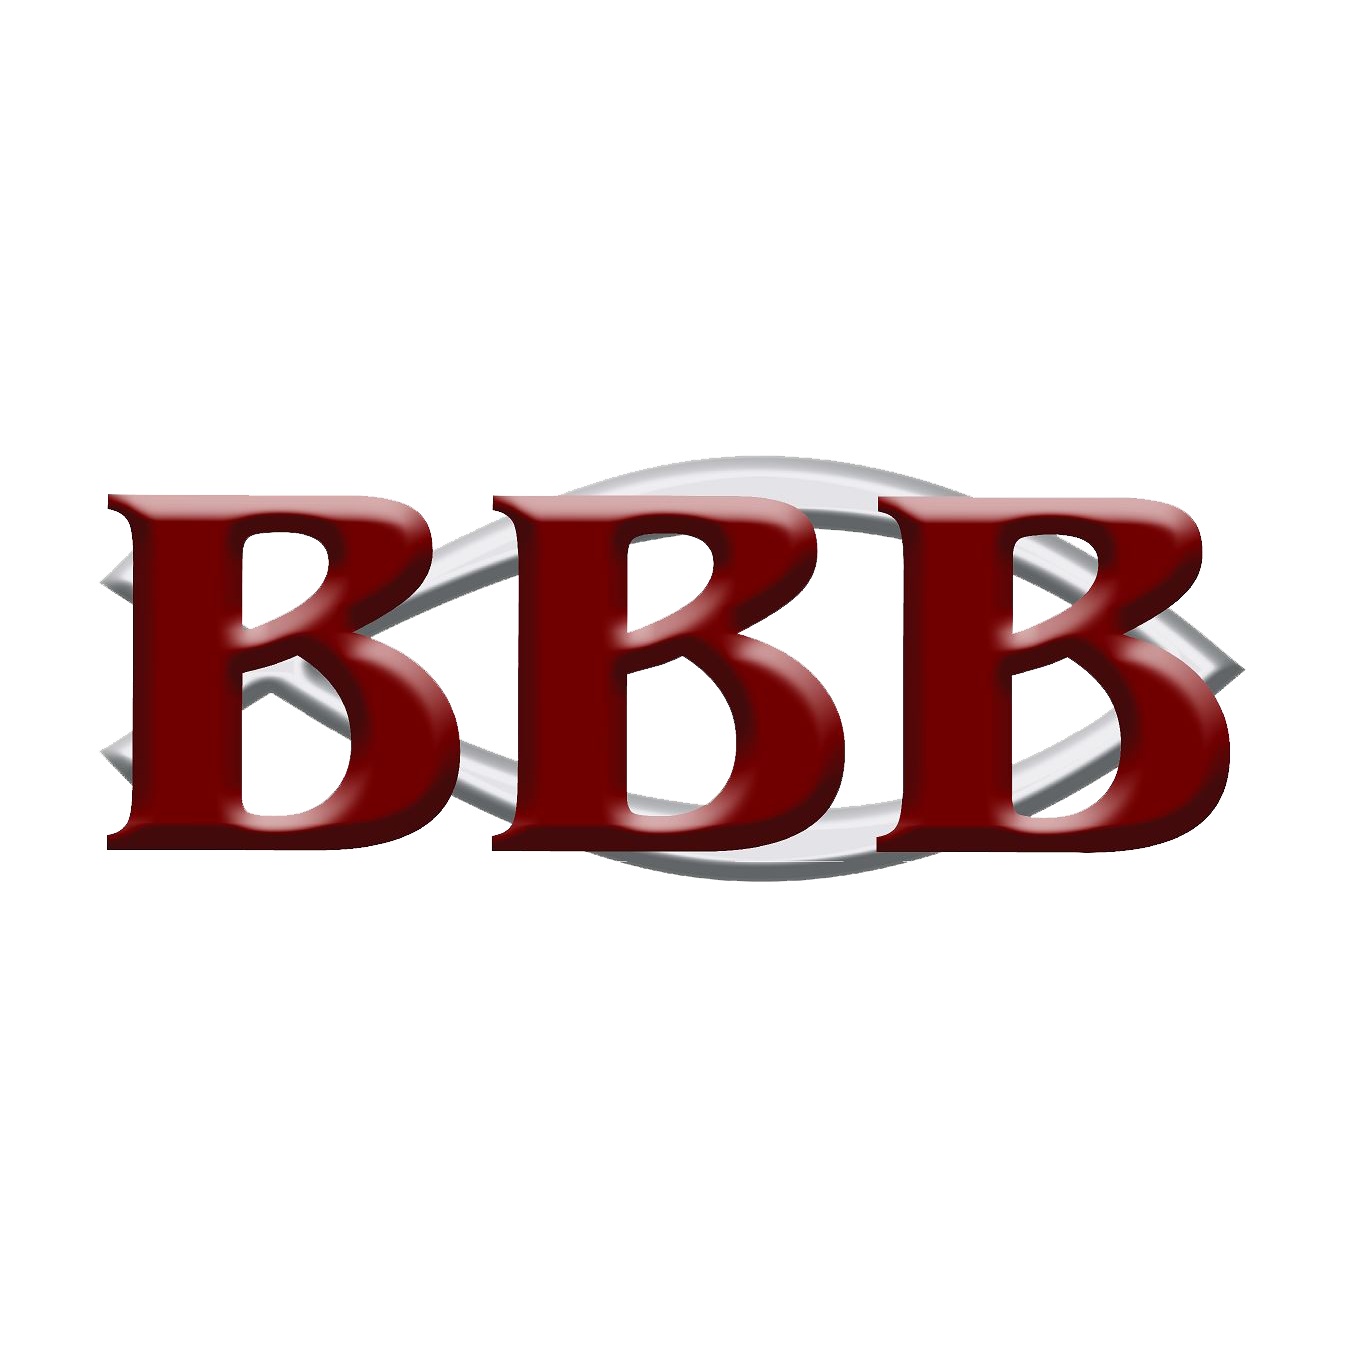 BBB Septic, Storm Shelters, Portable Toilets